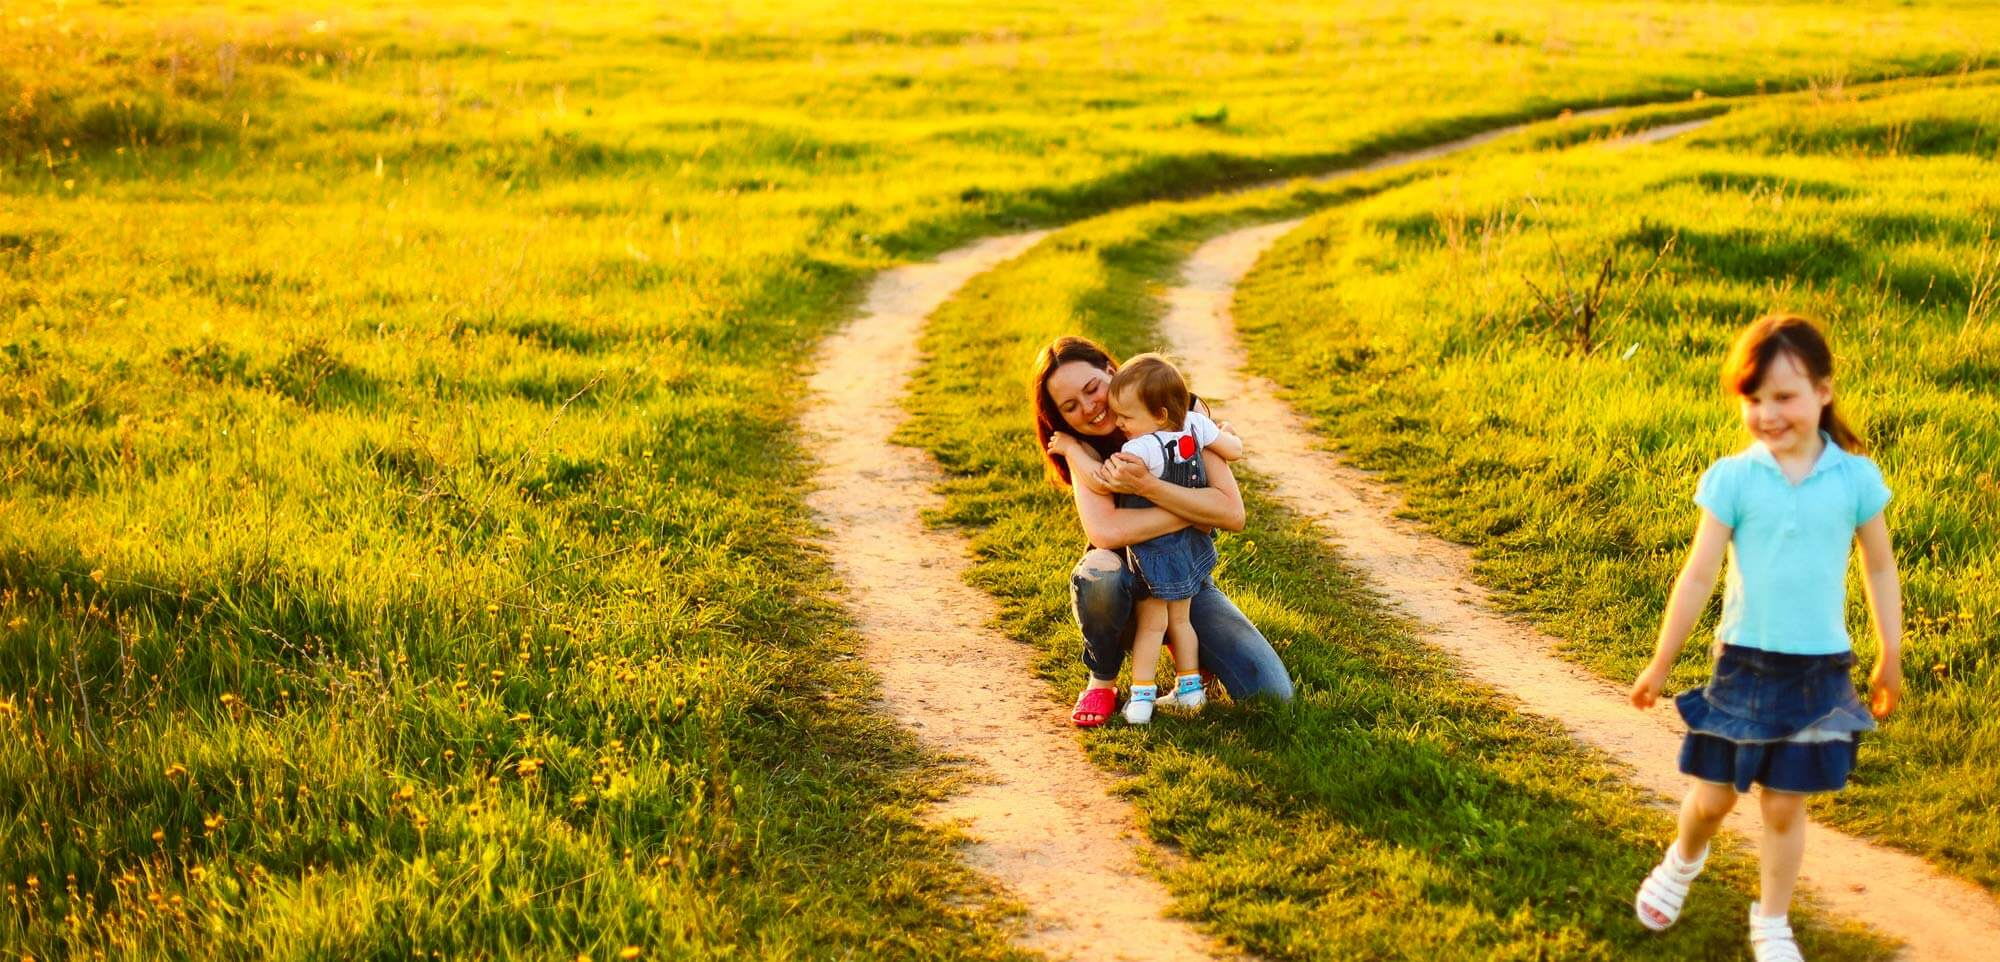 Mom hugging baby on dirt road.